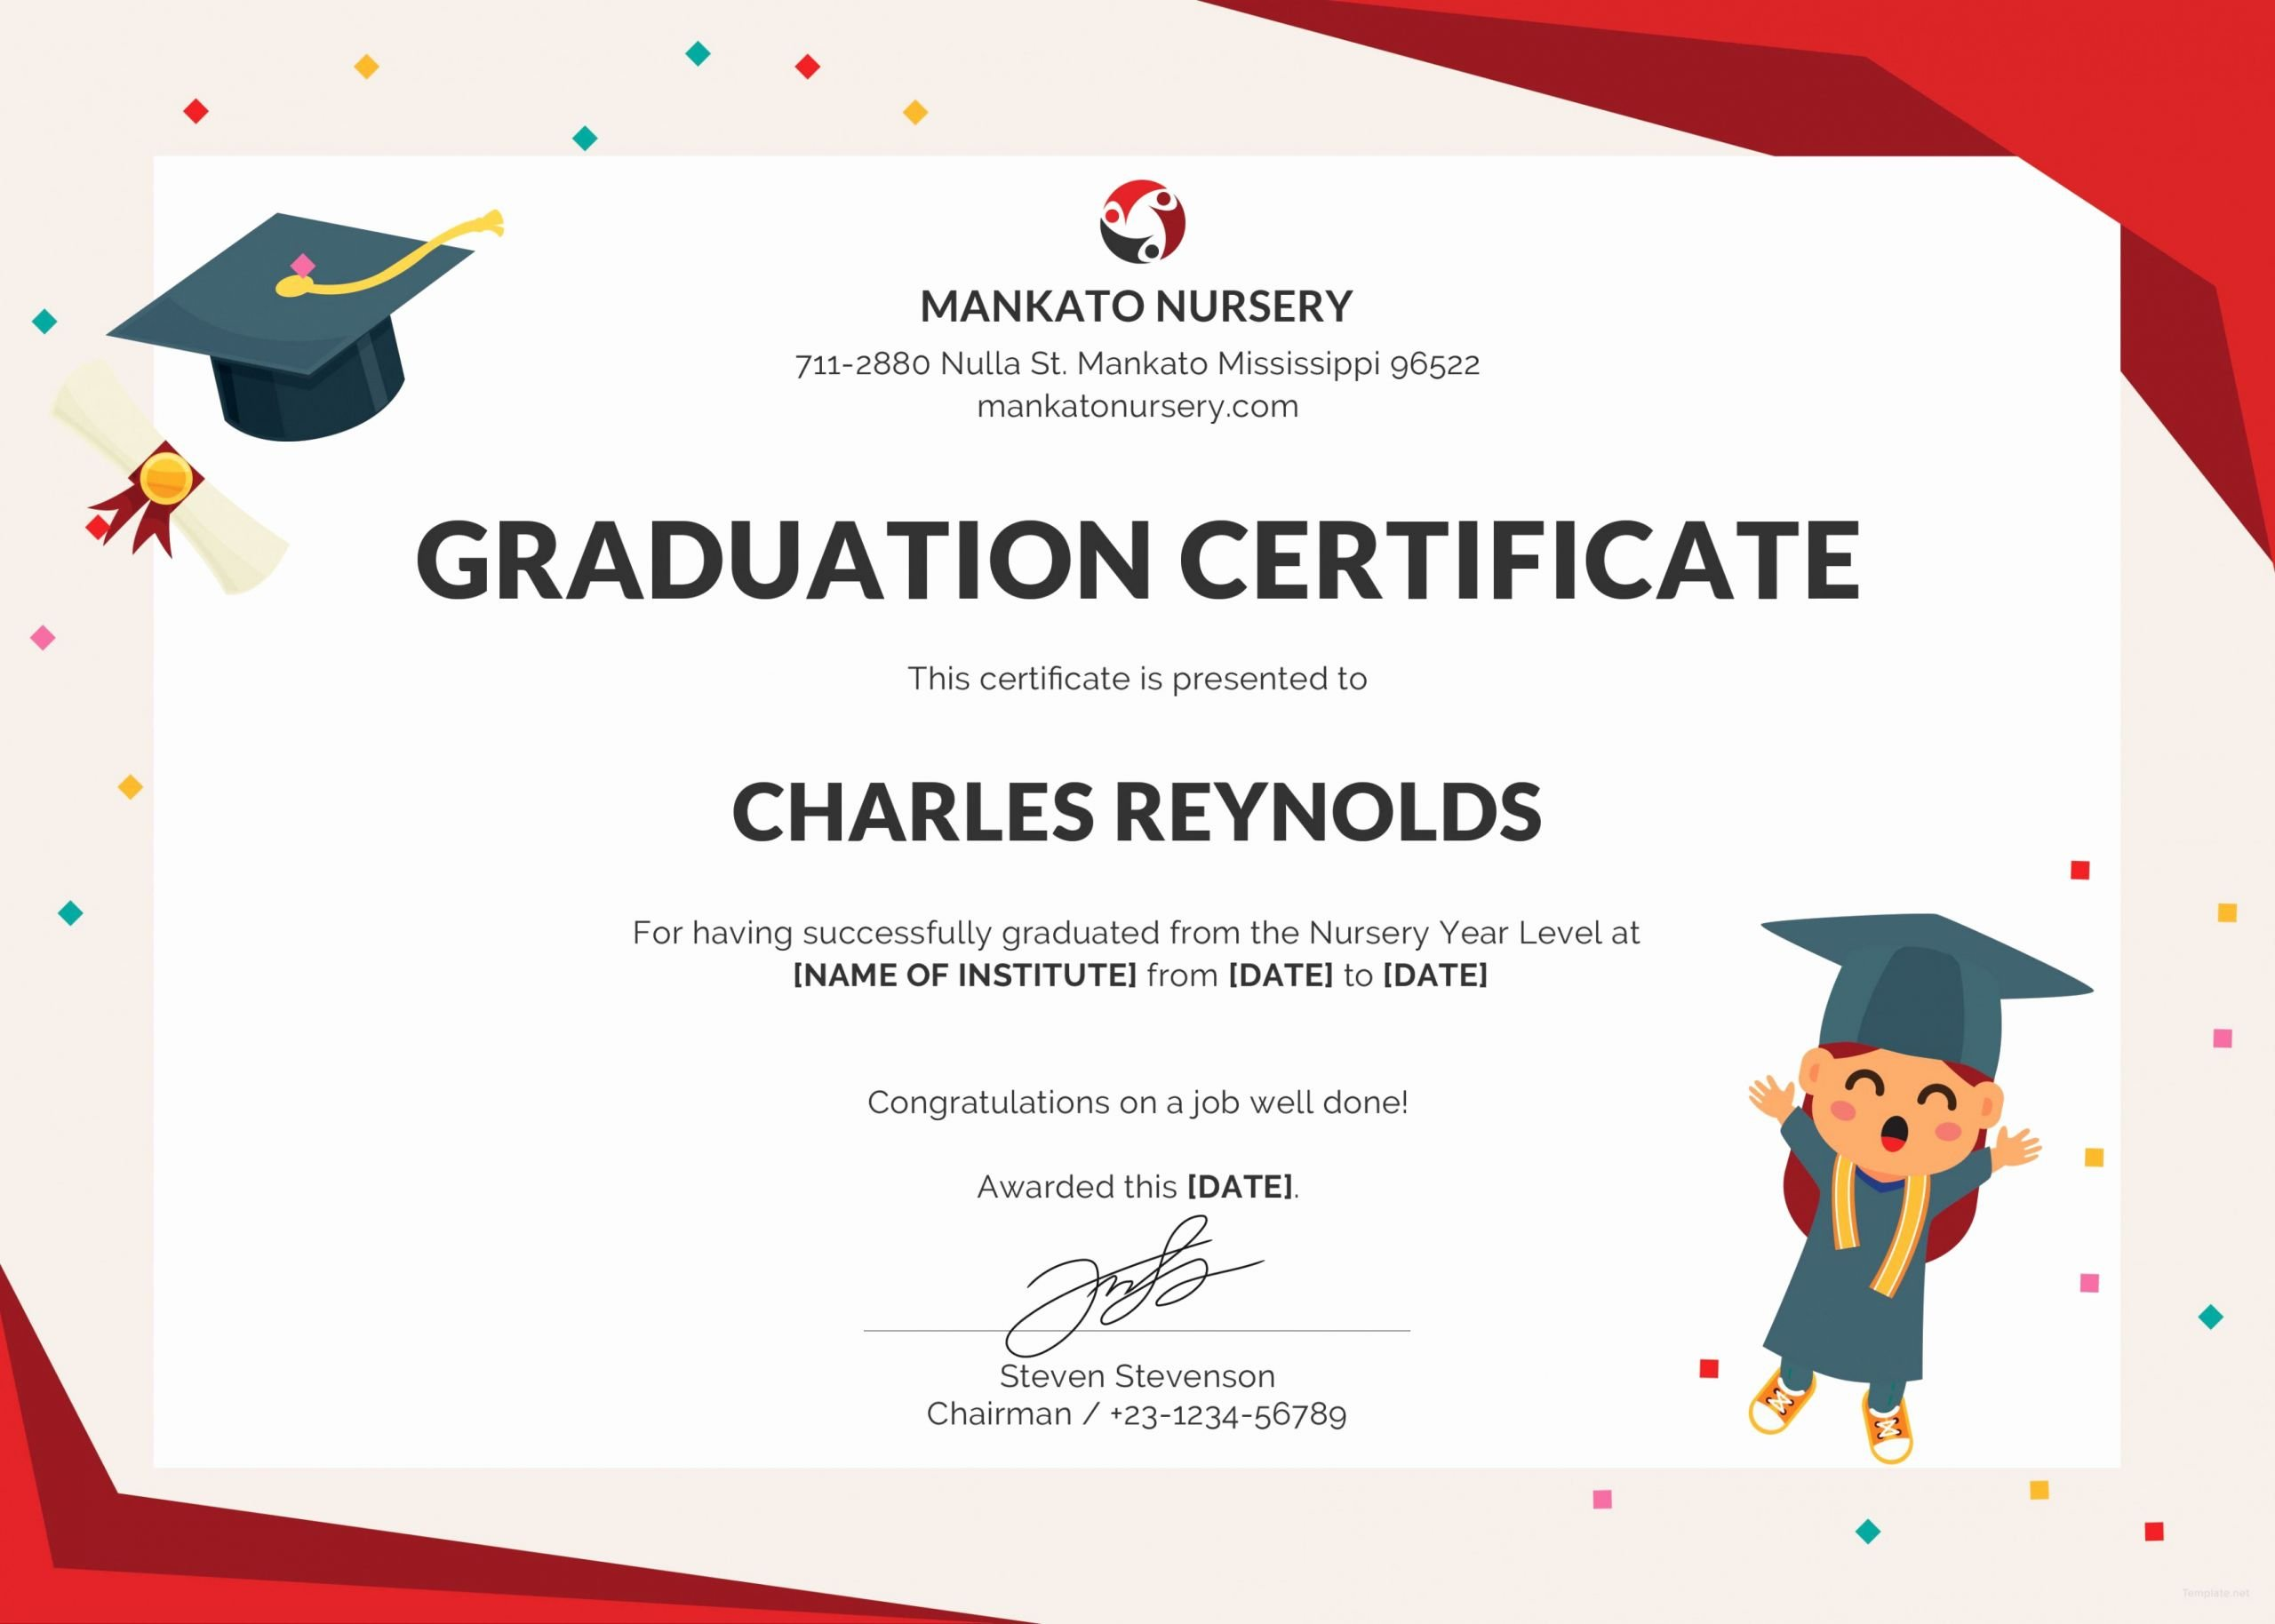 Free Graduation Templates for Word Fresh Free Nursery Graduation Certificate Template In Psd Ms